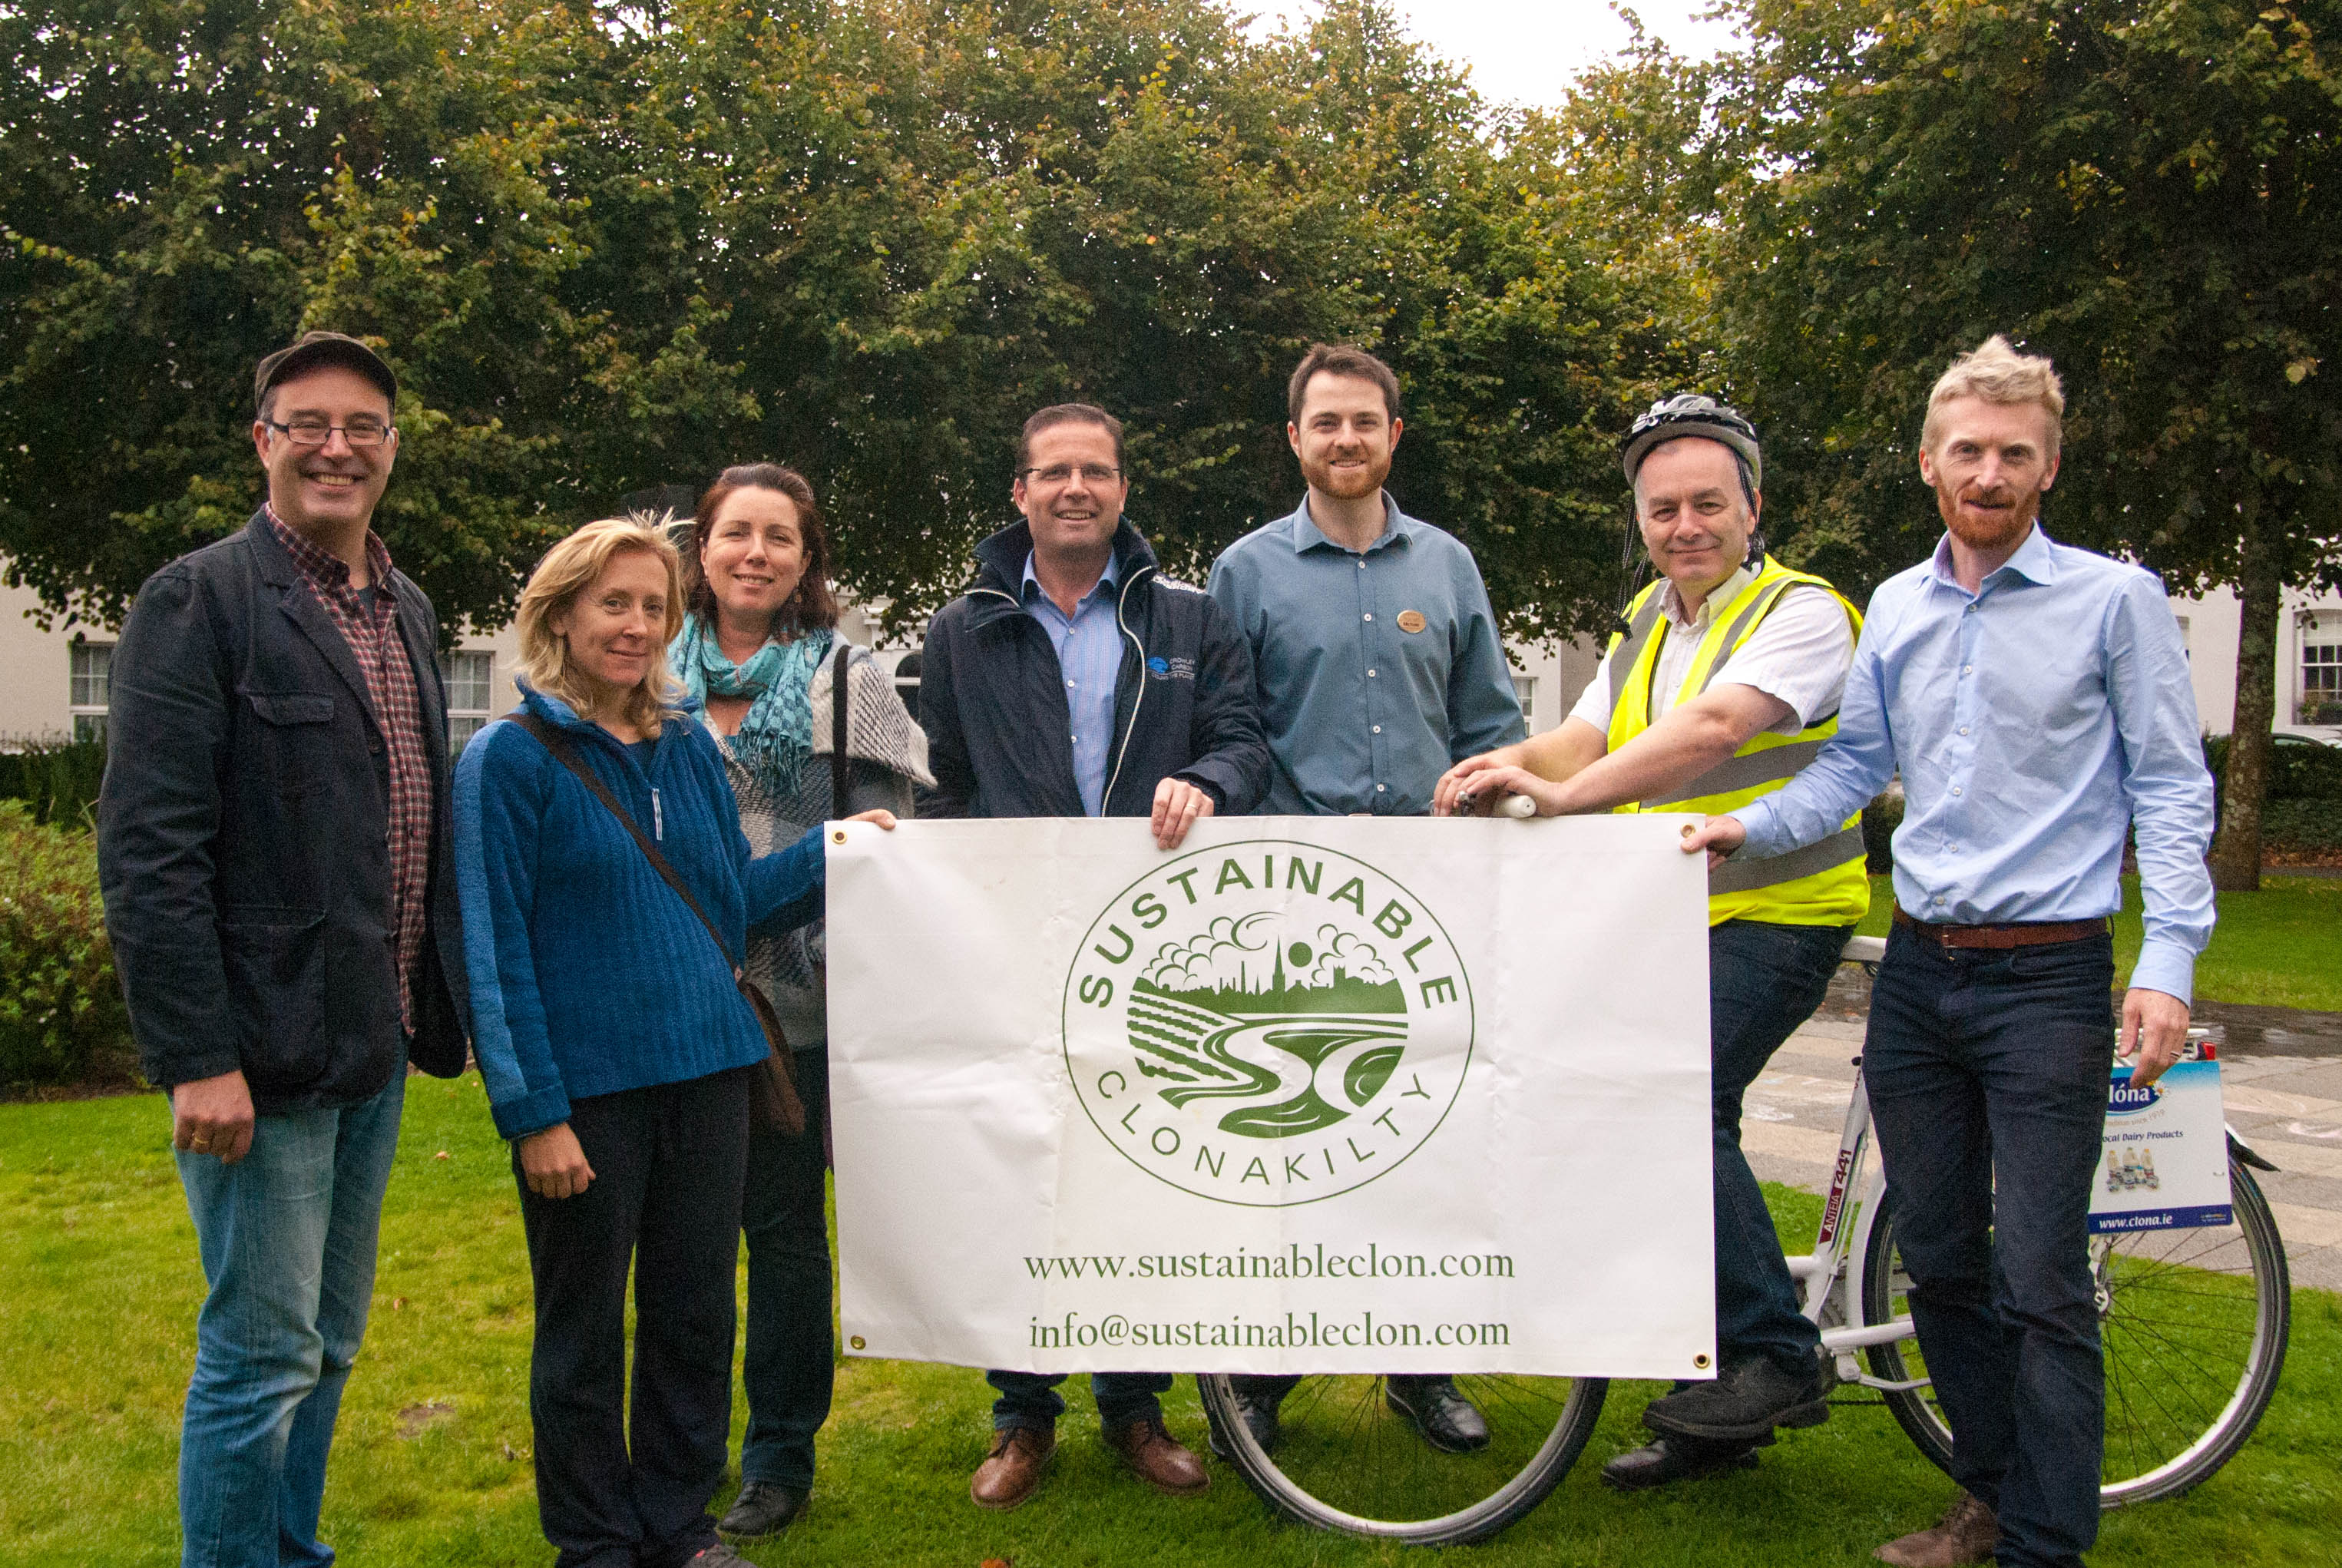 Clonakilty named among the world's top 100 sustainable destinations